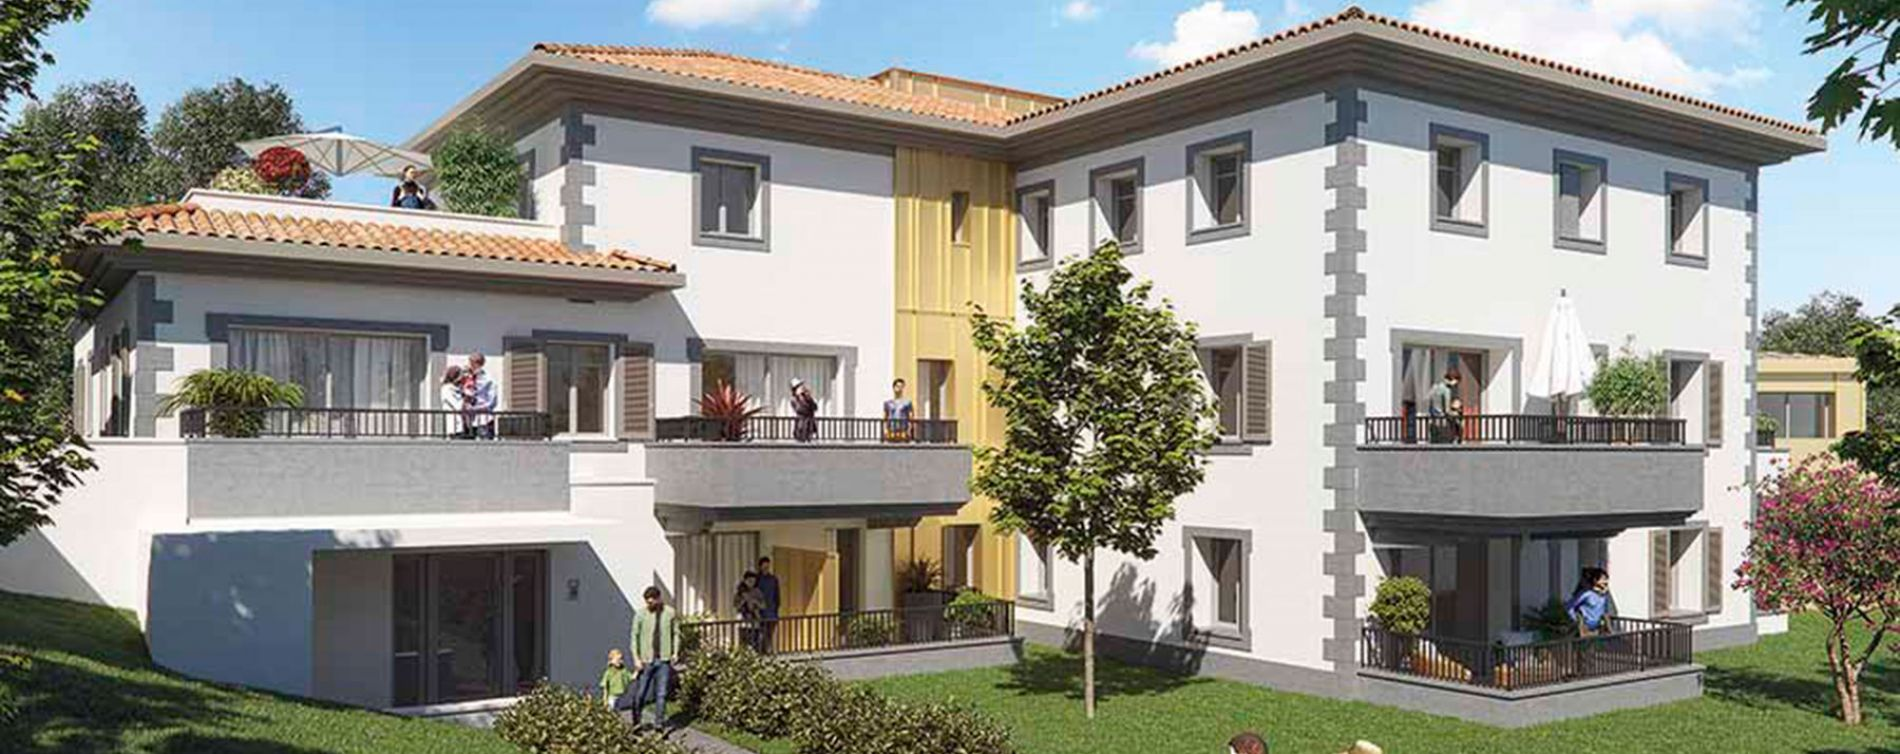 Anglet : programme immobilier neuve « Programme immobilier n°217098 » (2)